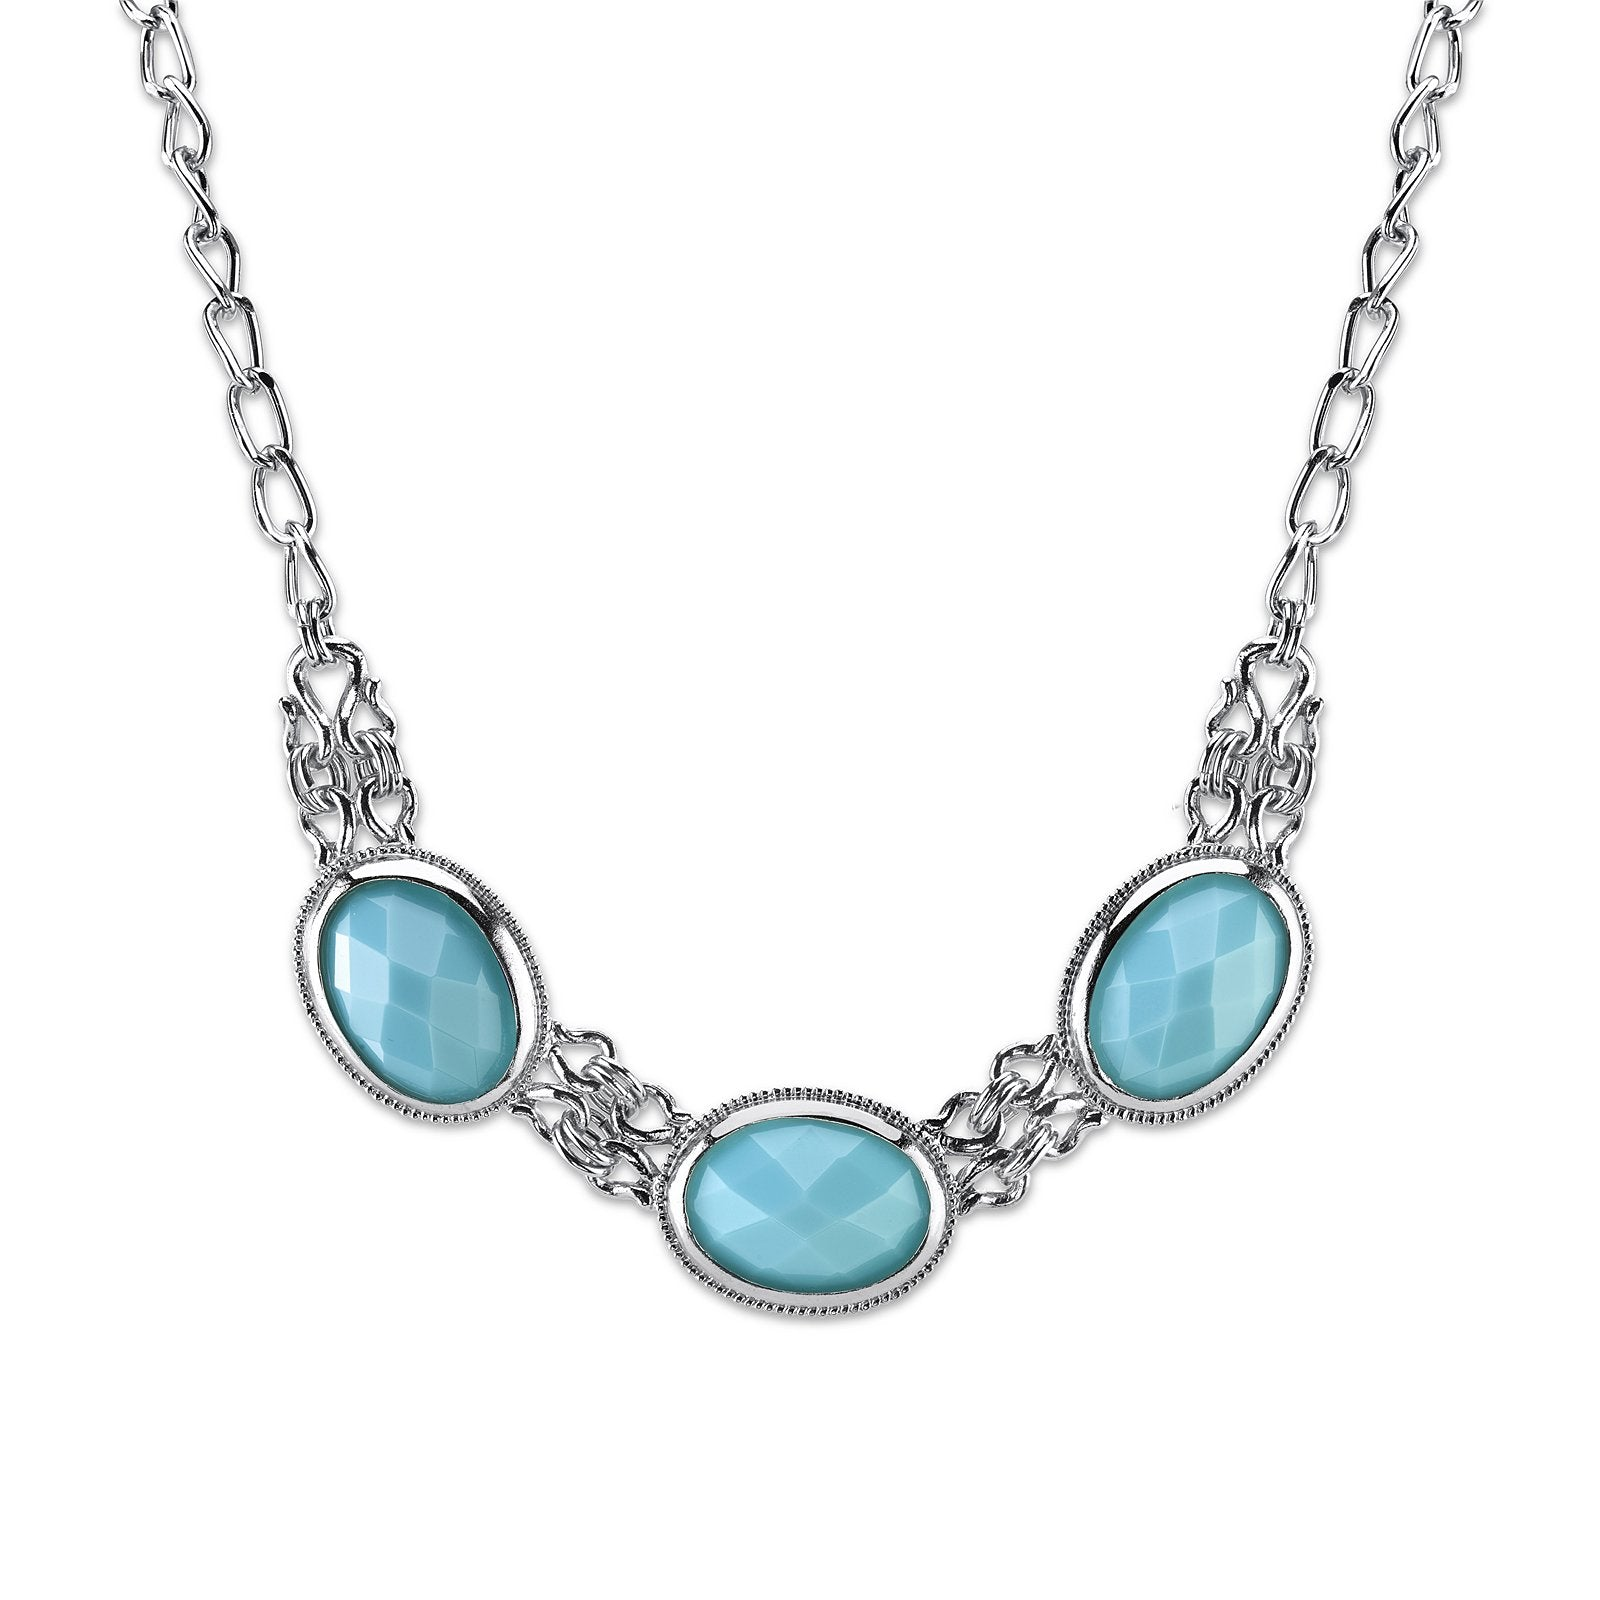 Silver-Tone Turquoise Blue Color Faceted Collar Necklace 16 Adj.